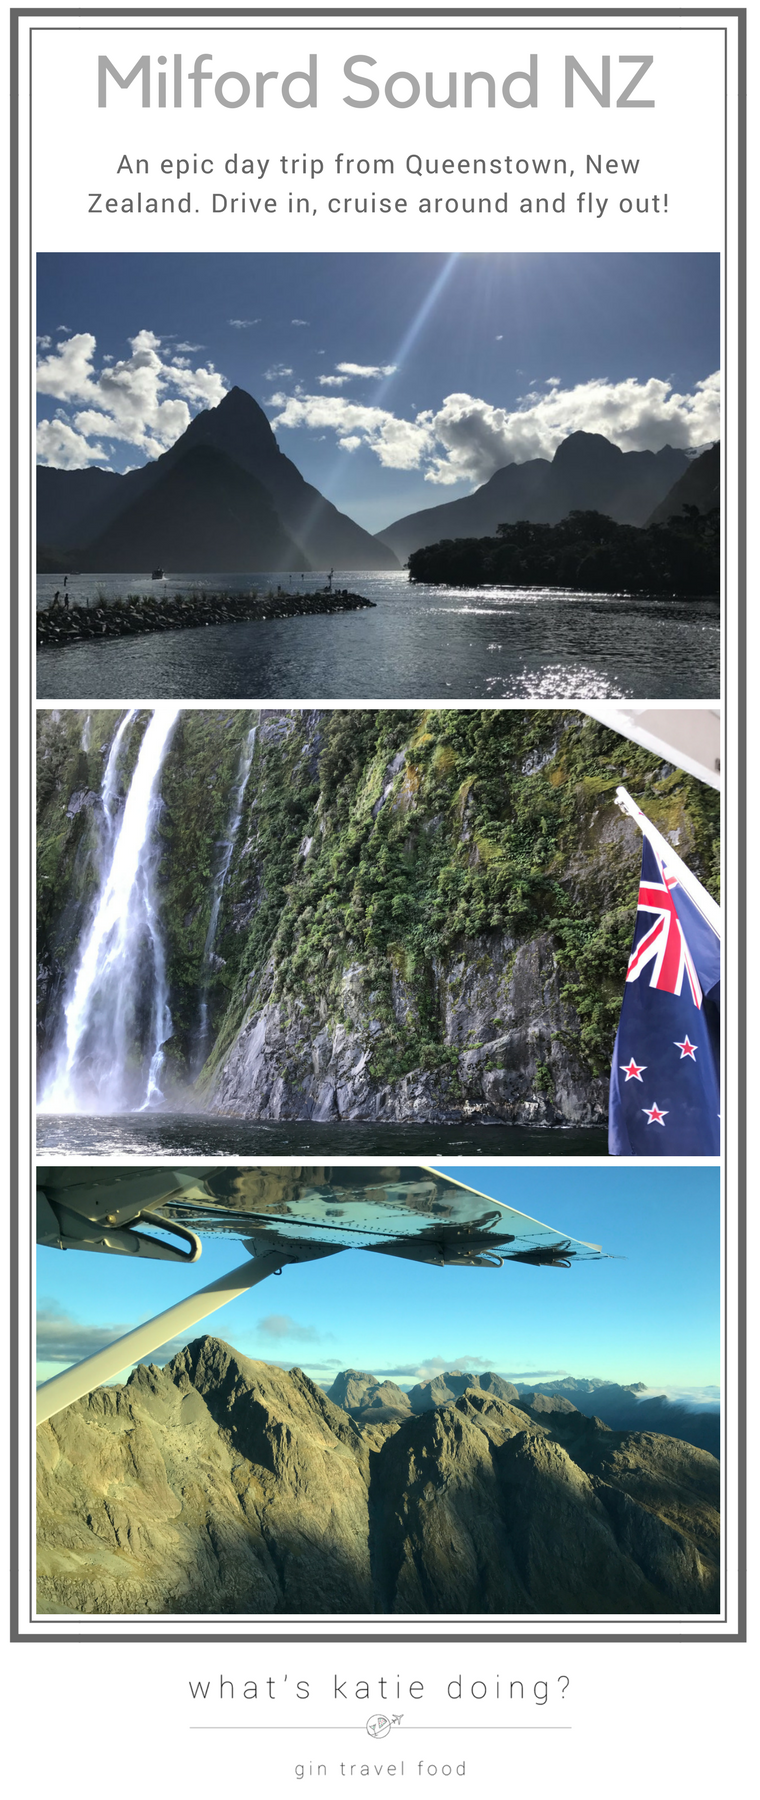 Three pictures of Milford Sound, New Zealand